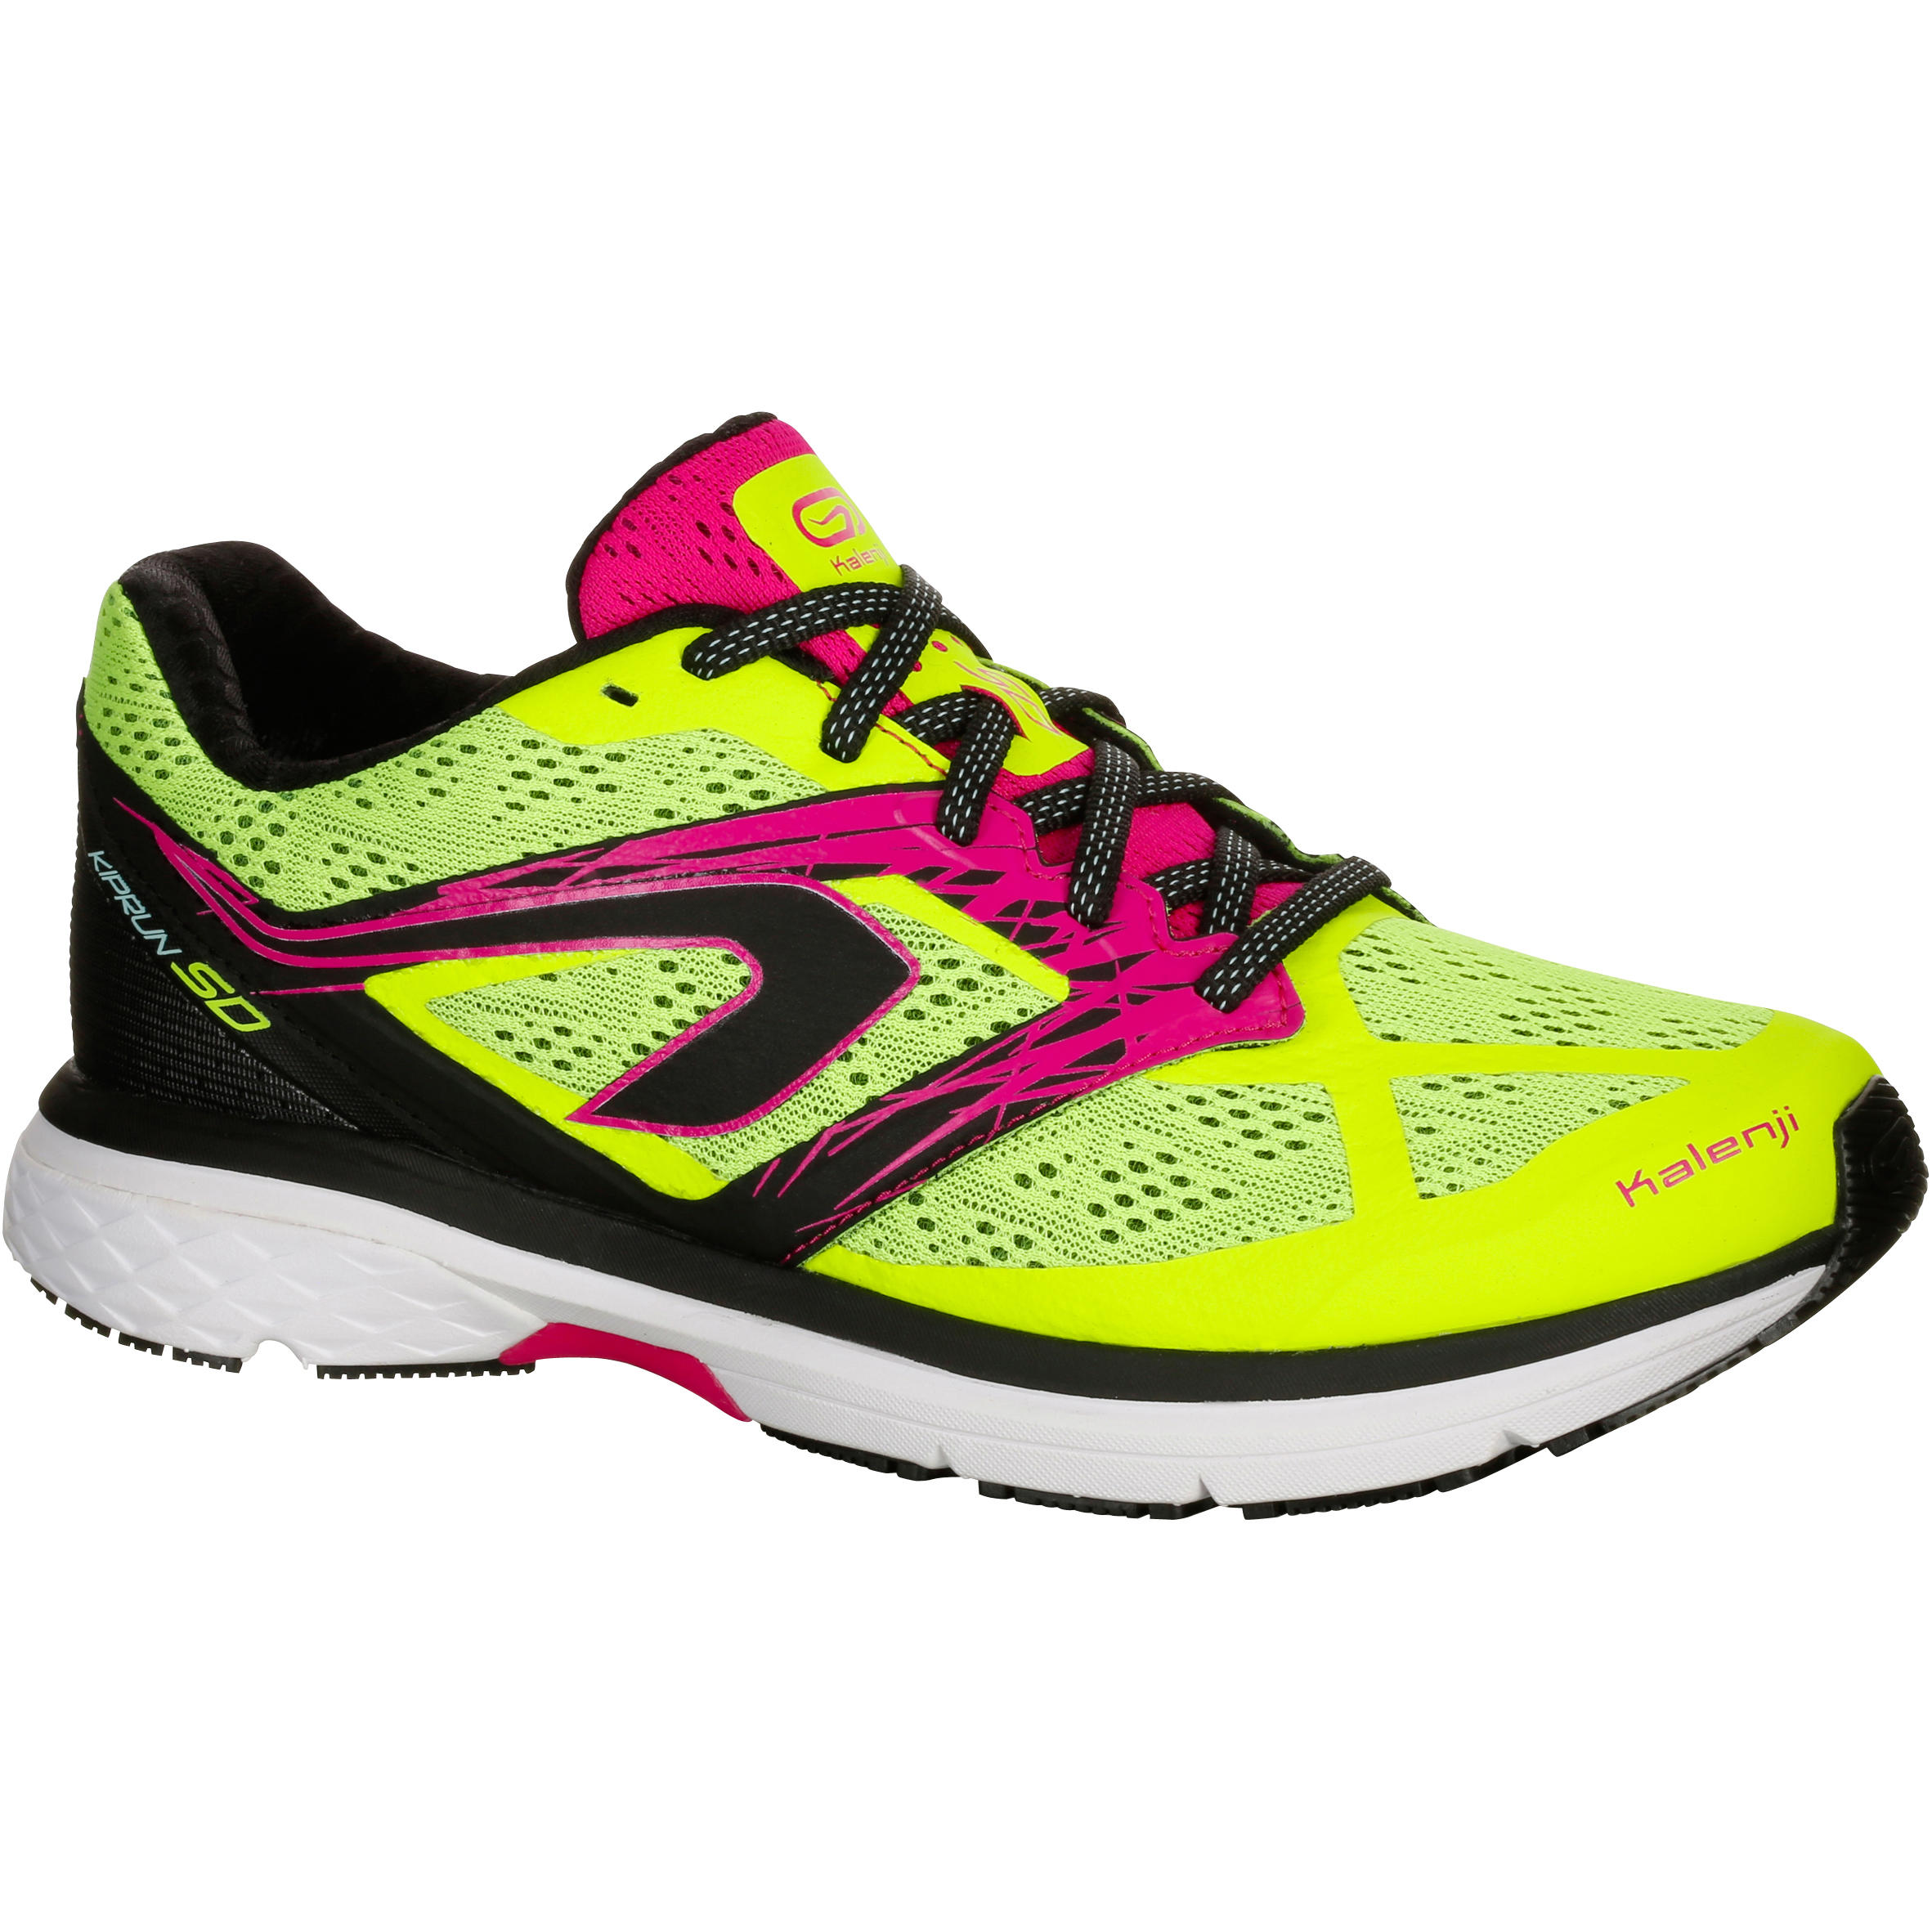 Kiprun SD Women's Running Shoes - Yellow Pink